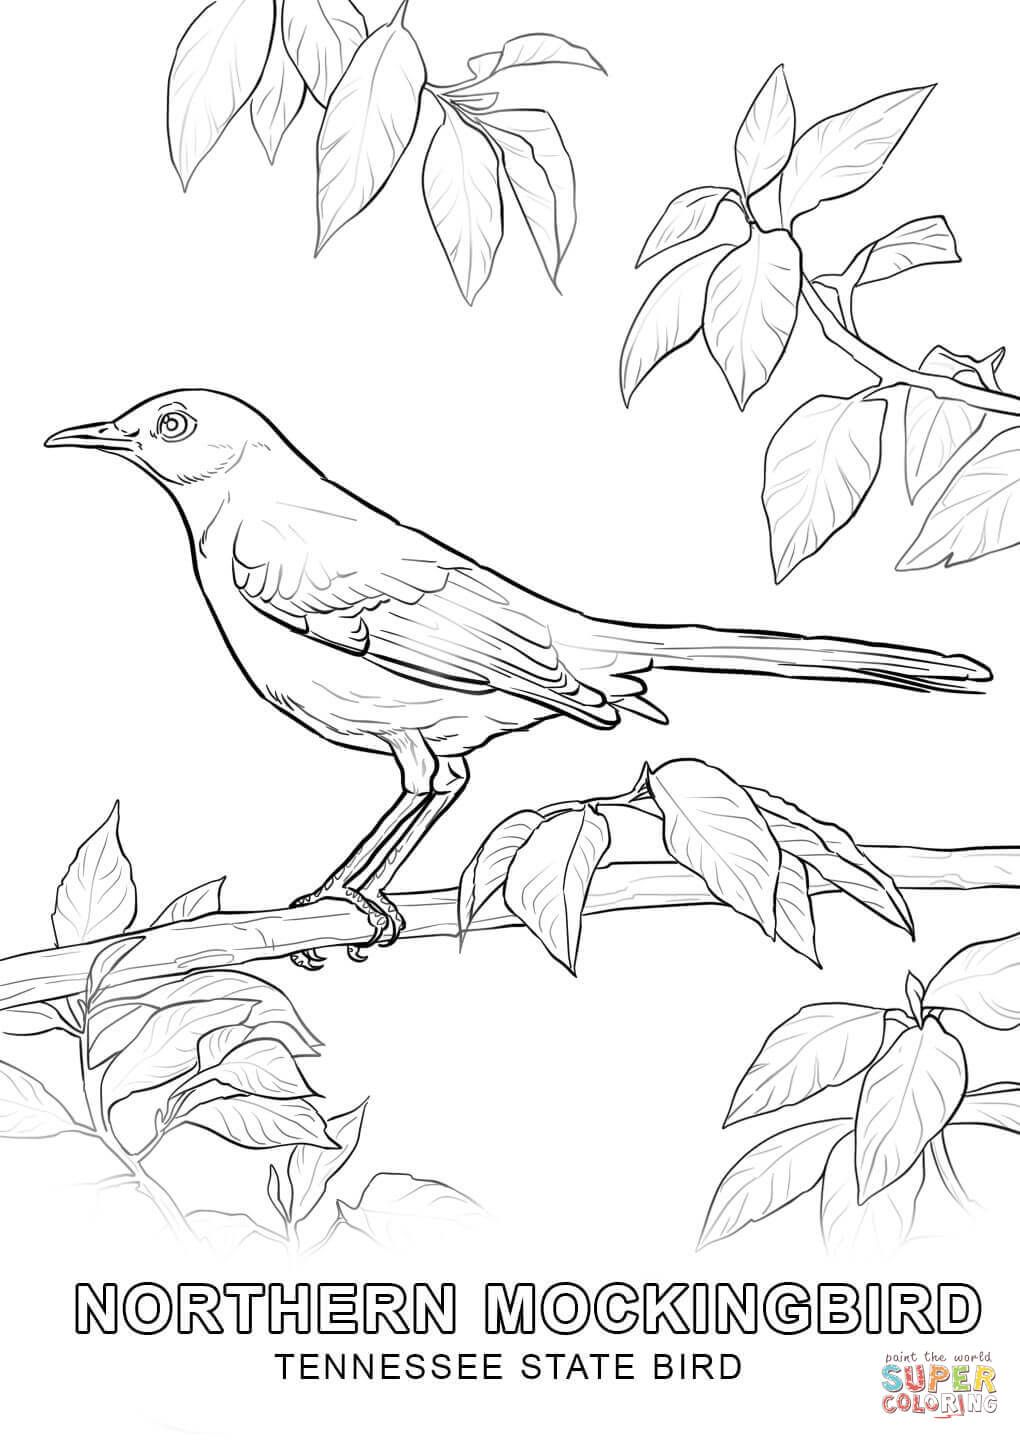 Tennessee State Bird Coloring Page Jpg 1020 1440 Bird Coloring